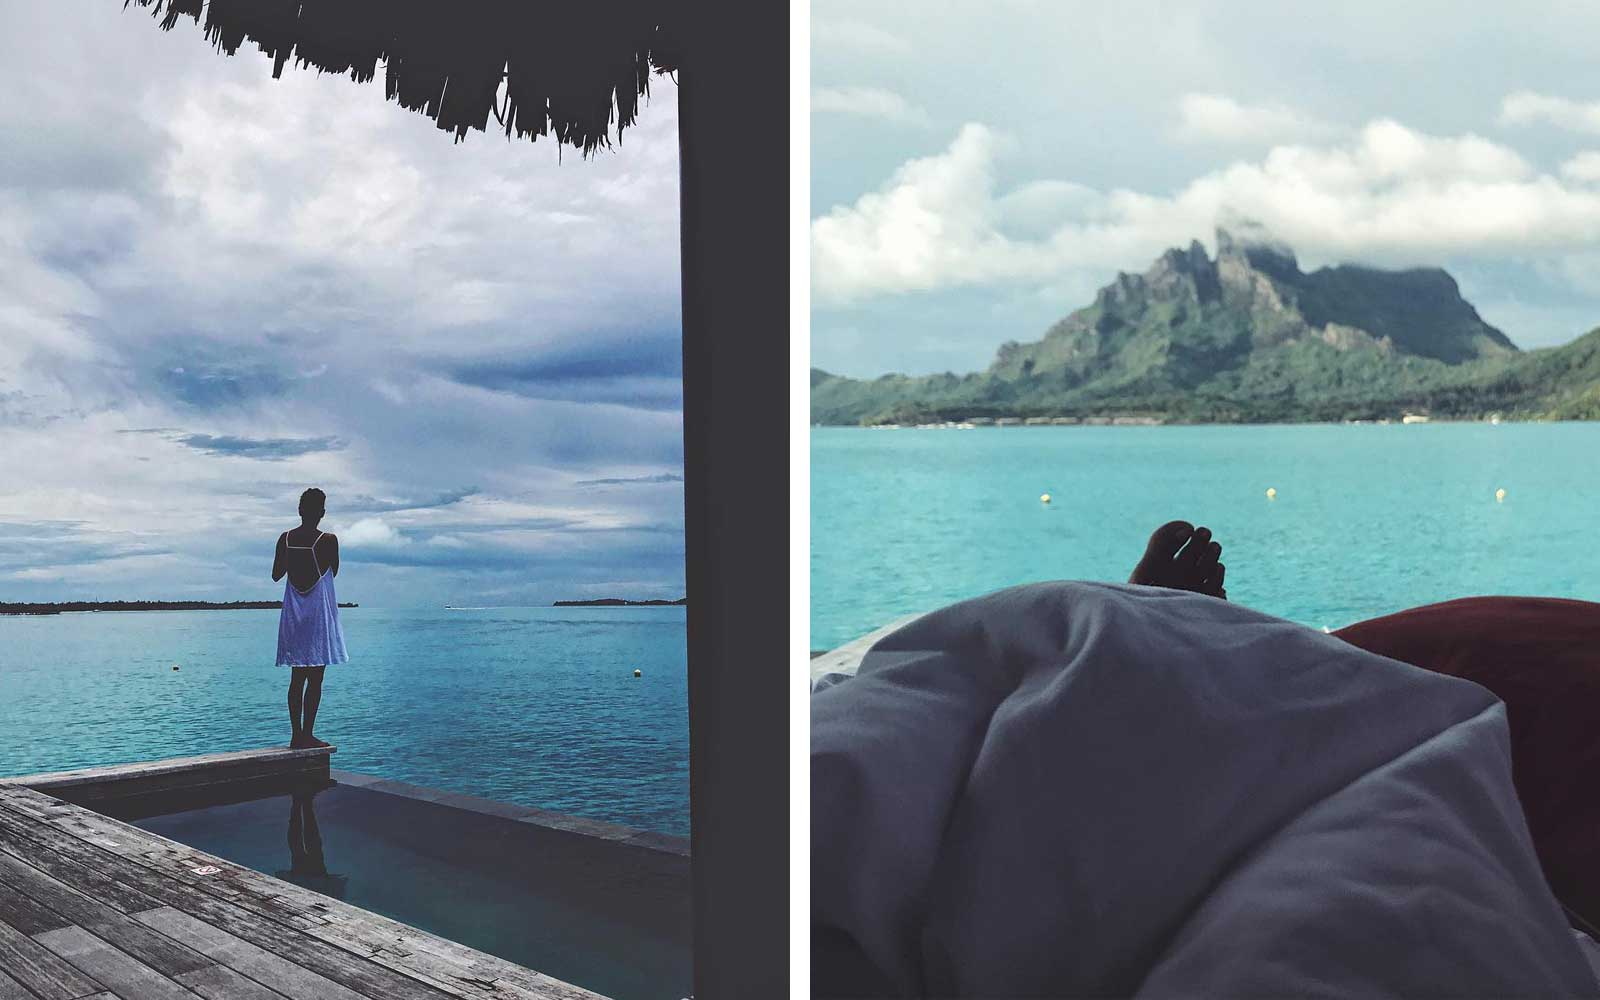 Halle Barry Instagram posts from Bora Bora